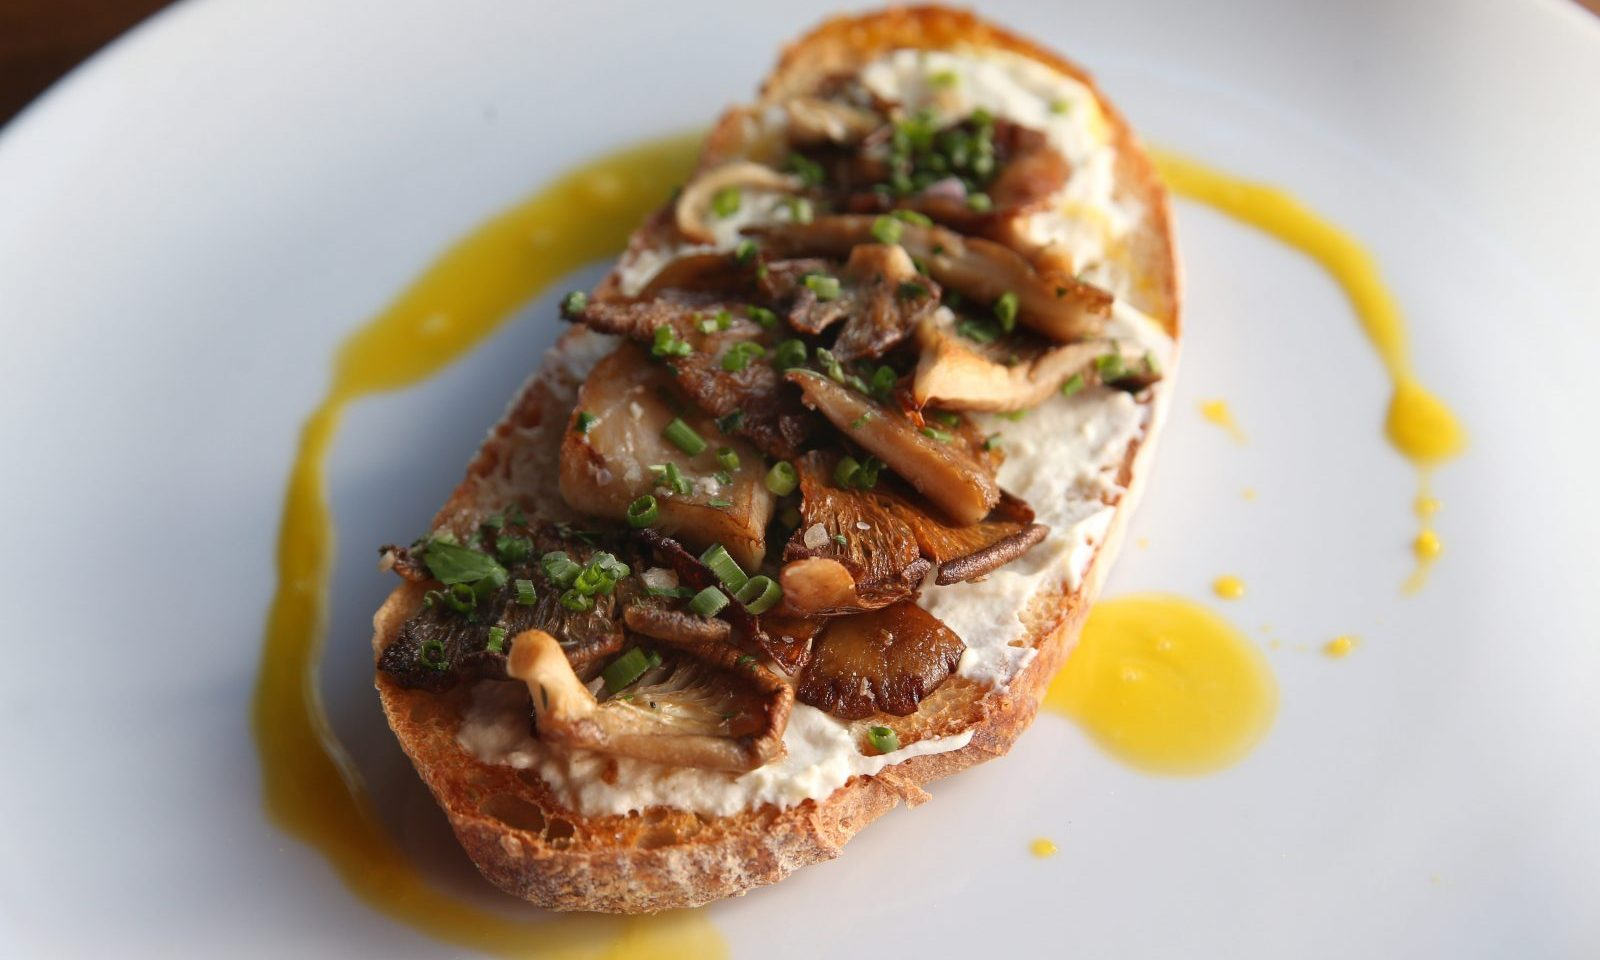 The Flat 12 mushroom toast is made with goat cheese and egg yolk at Carte Blanche. (Sharon Cantillon/Buffalo News)